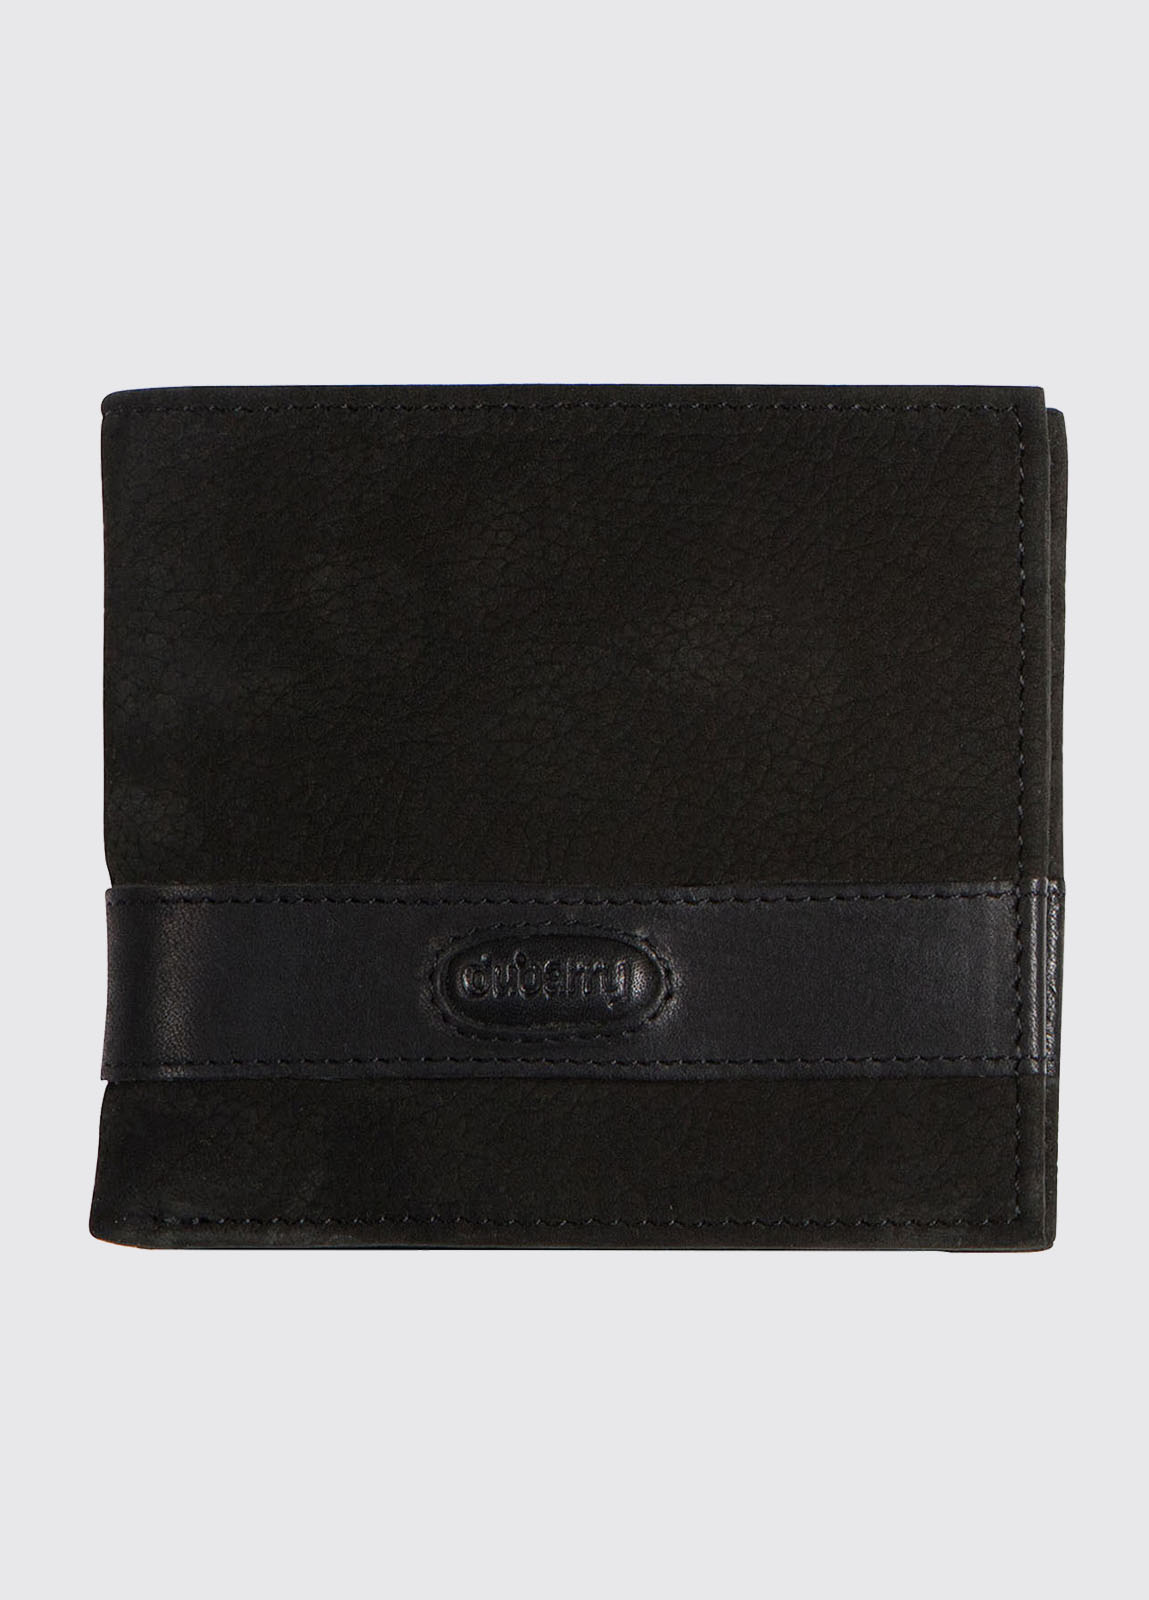 Grafton Leather Wallet - Black